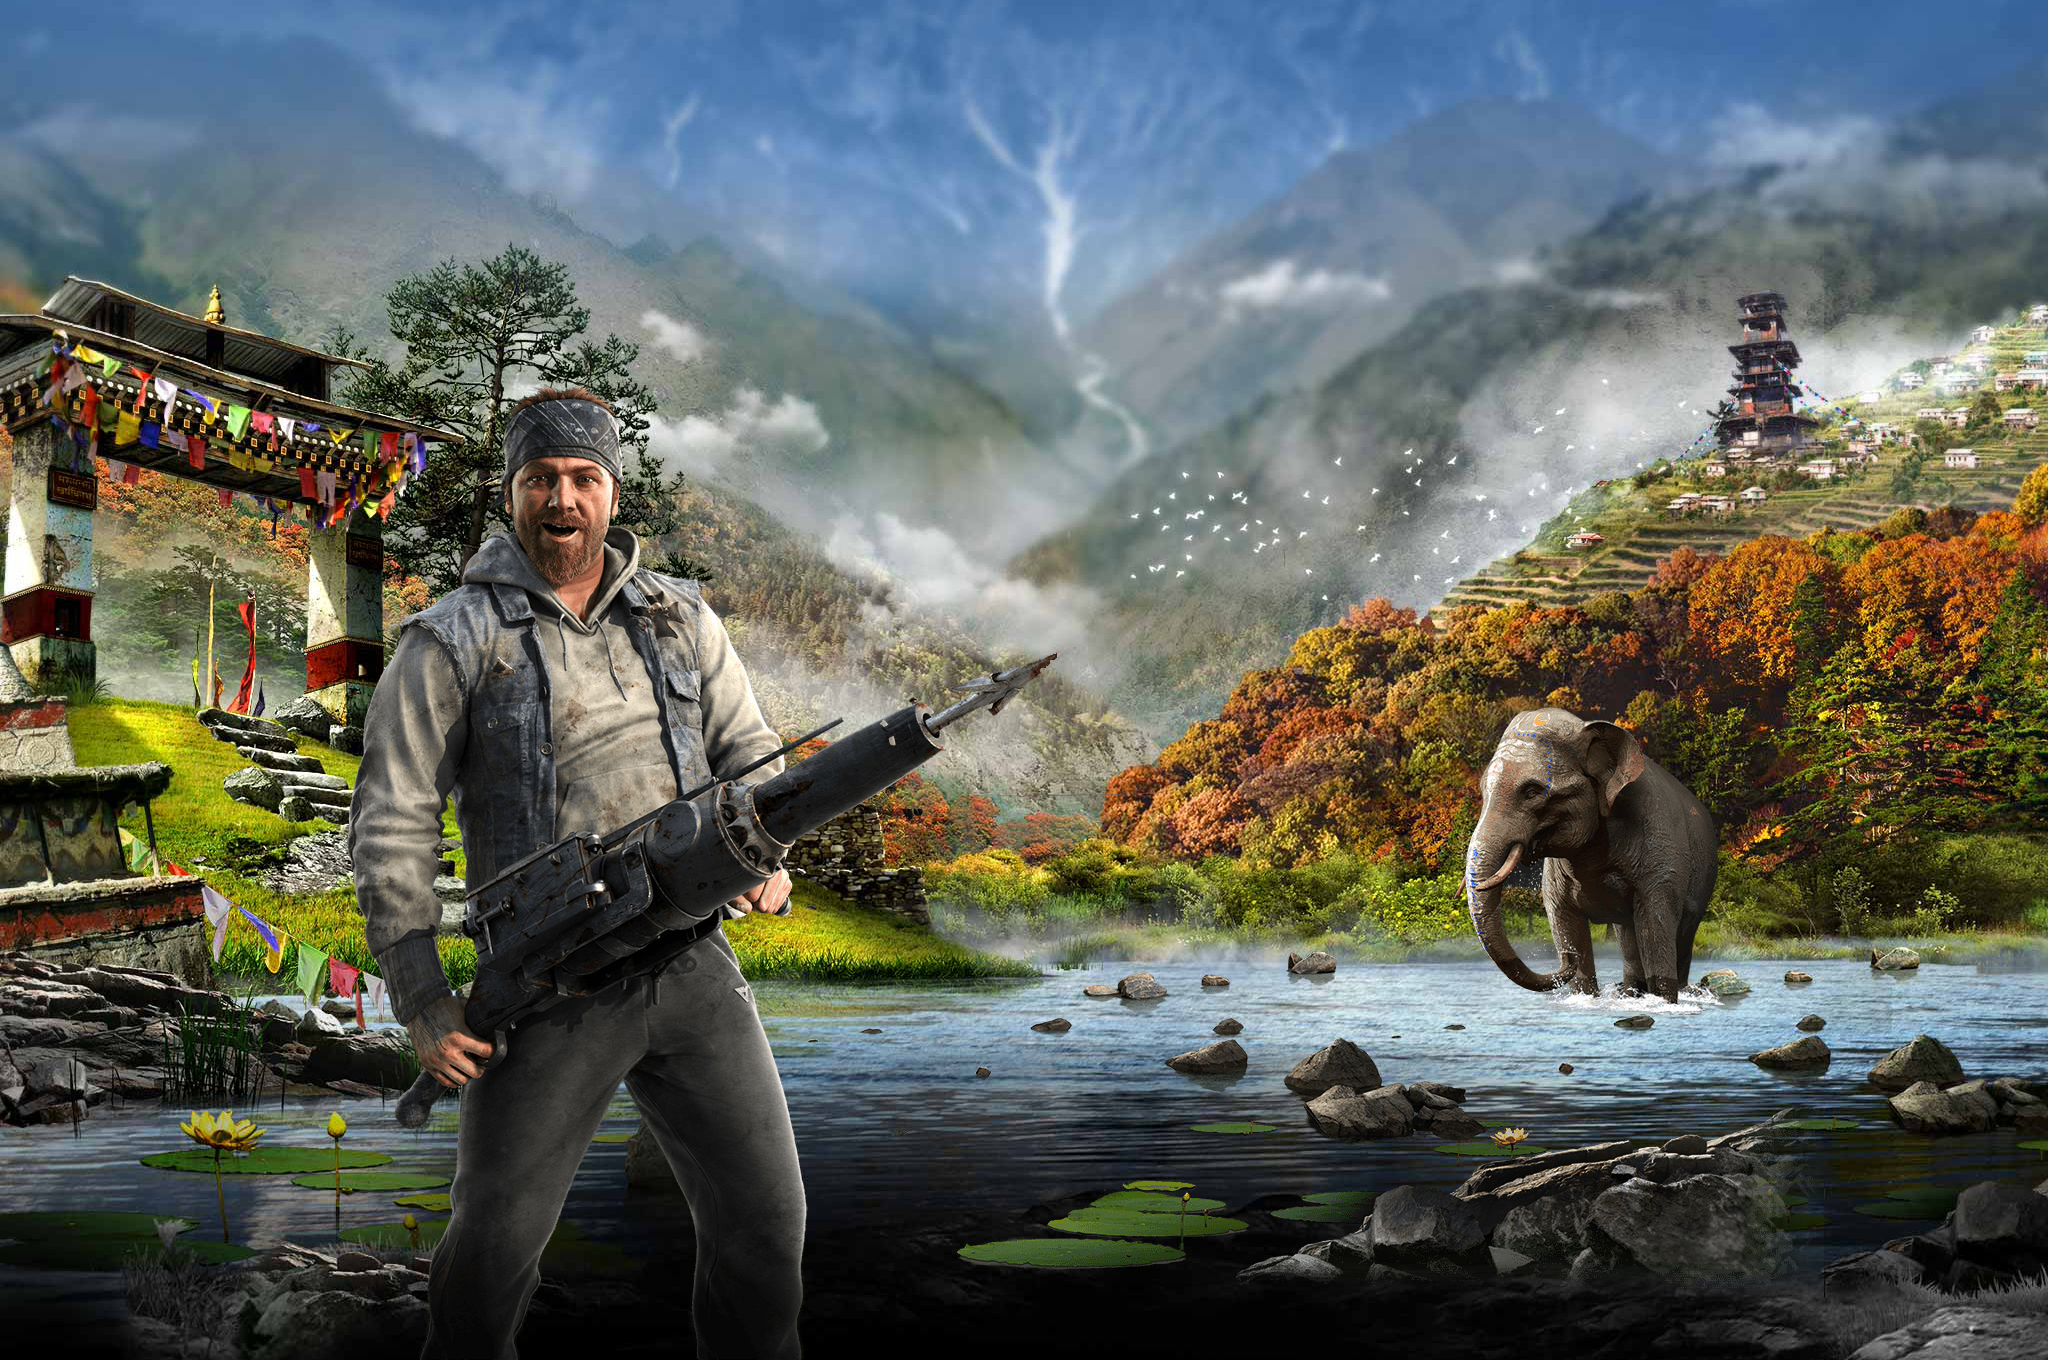 far-cry-4-ubisoft-montreal-3446